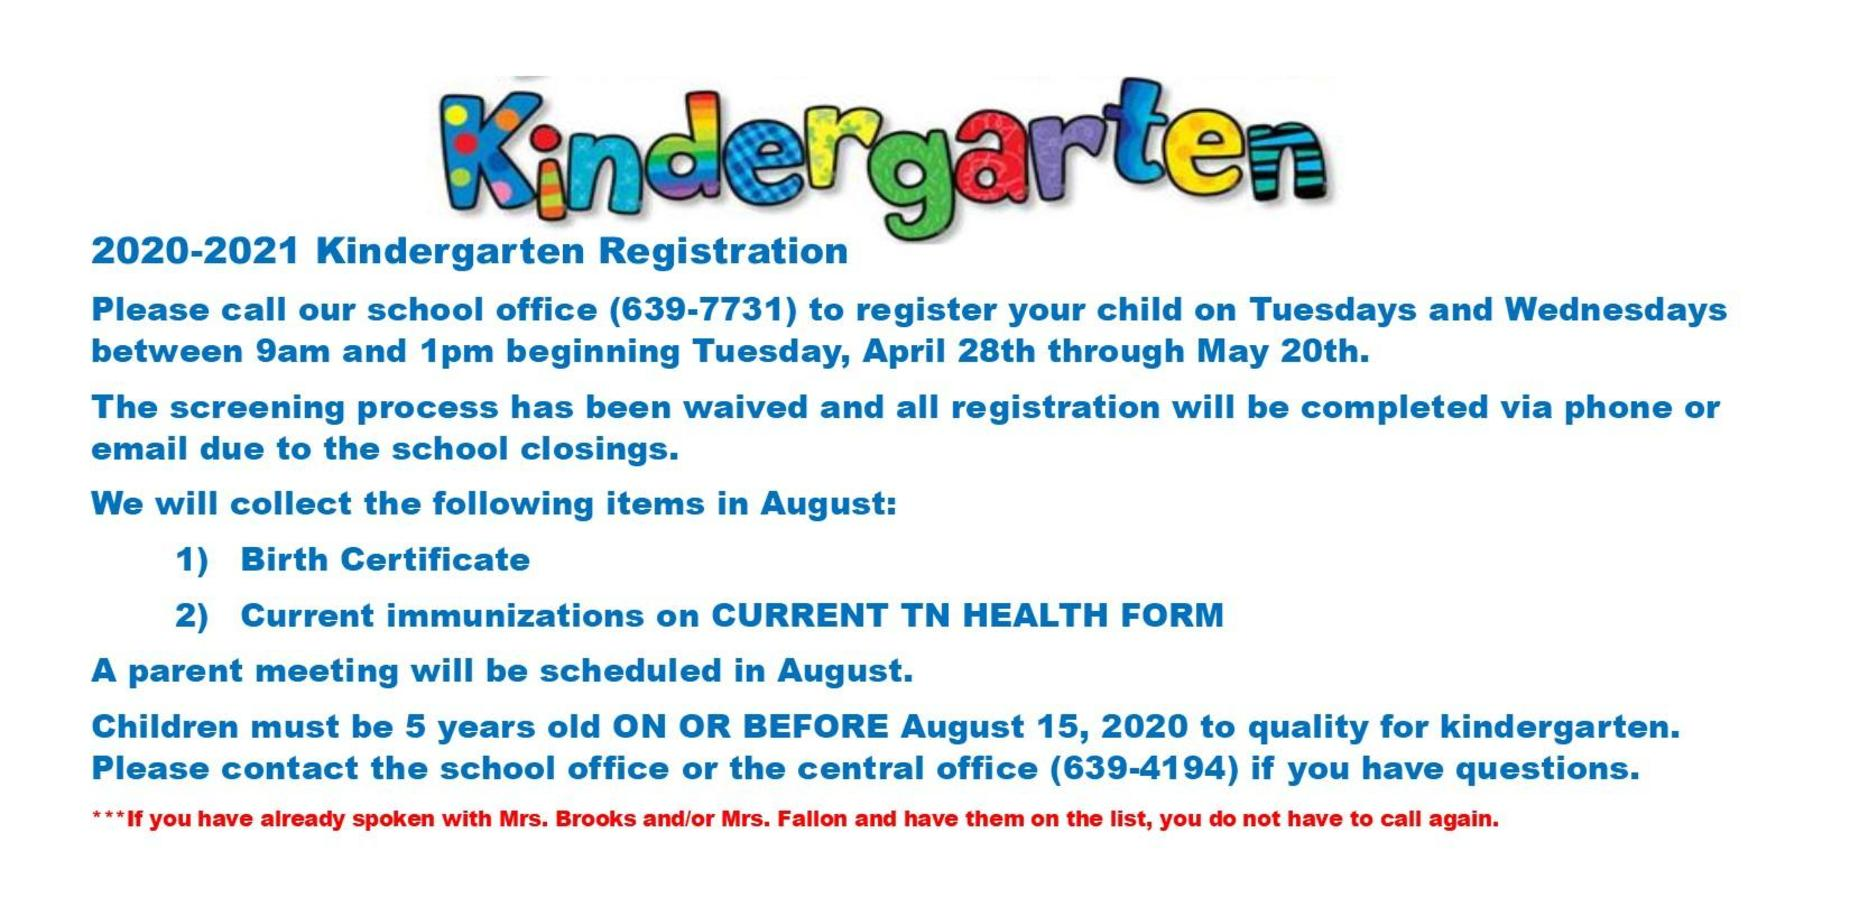 2020-2021 Kindergarten Registration Please call our school office (639-7731) to register your child on Tuesdays and Wednesdays between 9am and 1pm beginning Tuesday, April 28th through May 20th. The screening process has been waived and all registration will be completed via phone or email due to the school closings. We will collect the following items in August:   Birth Certificate   Current immunizations on CURRENT TN HEALTH FORM A parent meeting will be scheduled in August. Children must be 5 years old ON OR BEFORE August 15, 2020 to quality for kindergarten.  Please contact the school office or the central office (639-4194) if you have questions. ***If you have already spoken with Mrs. Brooks and/or Mrs. Fallon and have them on the list, you do not have to call again.